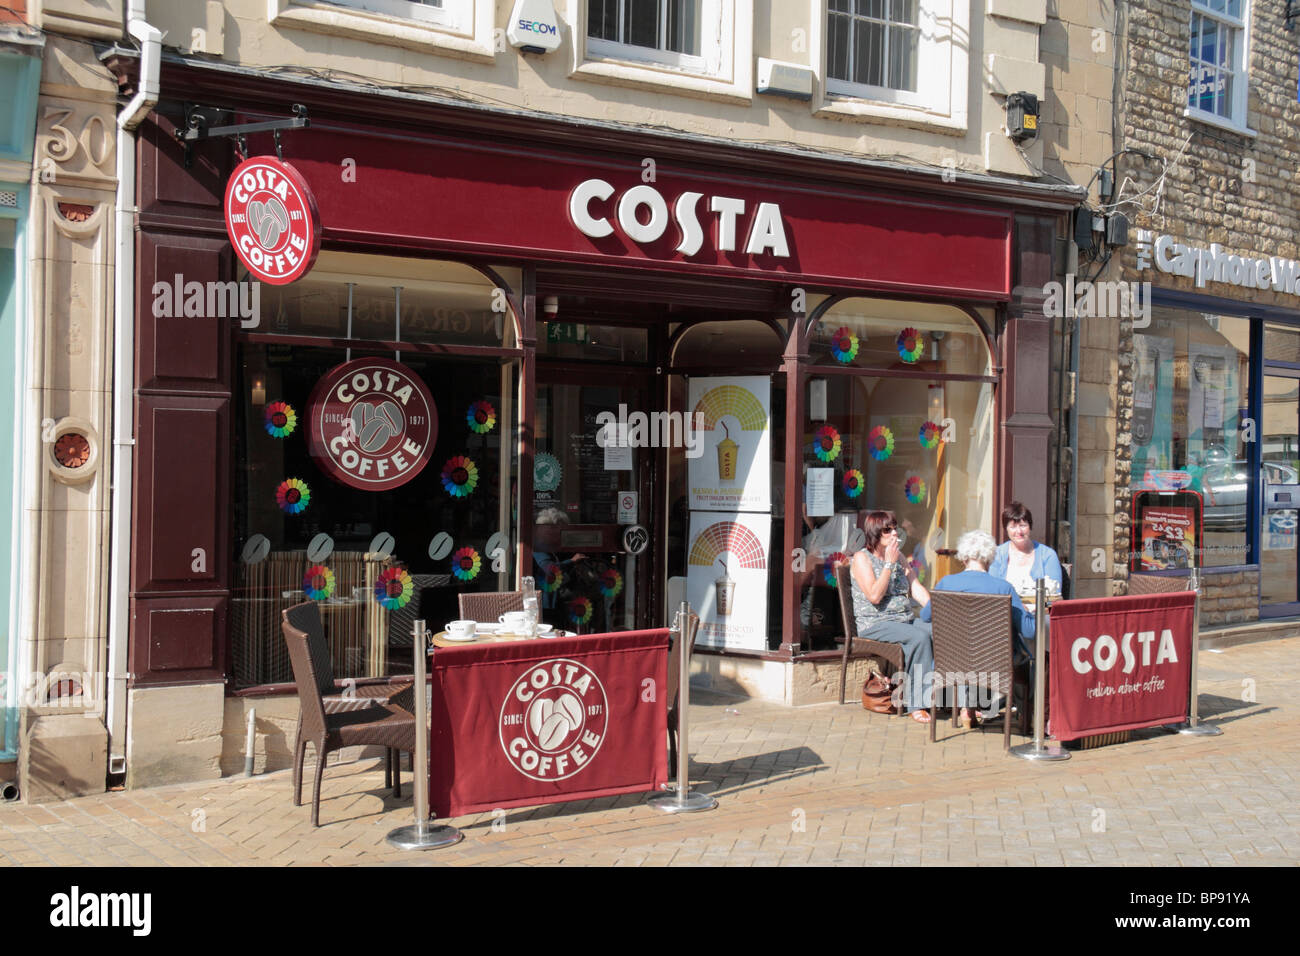 The Shop Front To A Costa Coffee Restaurant Cafe In The